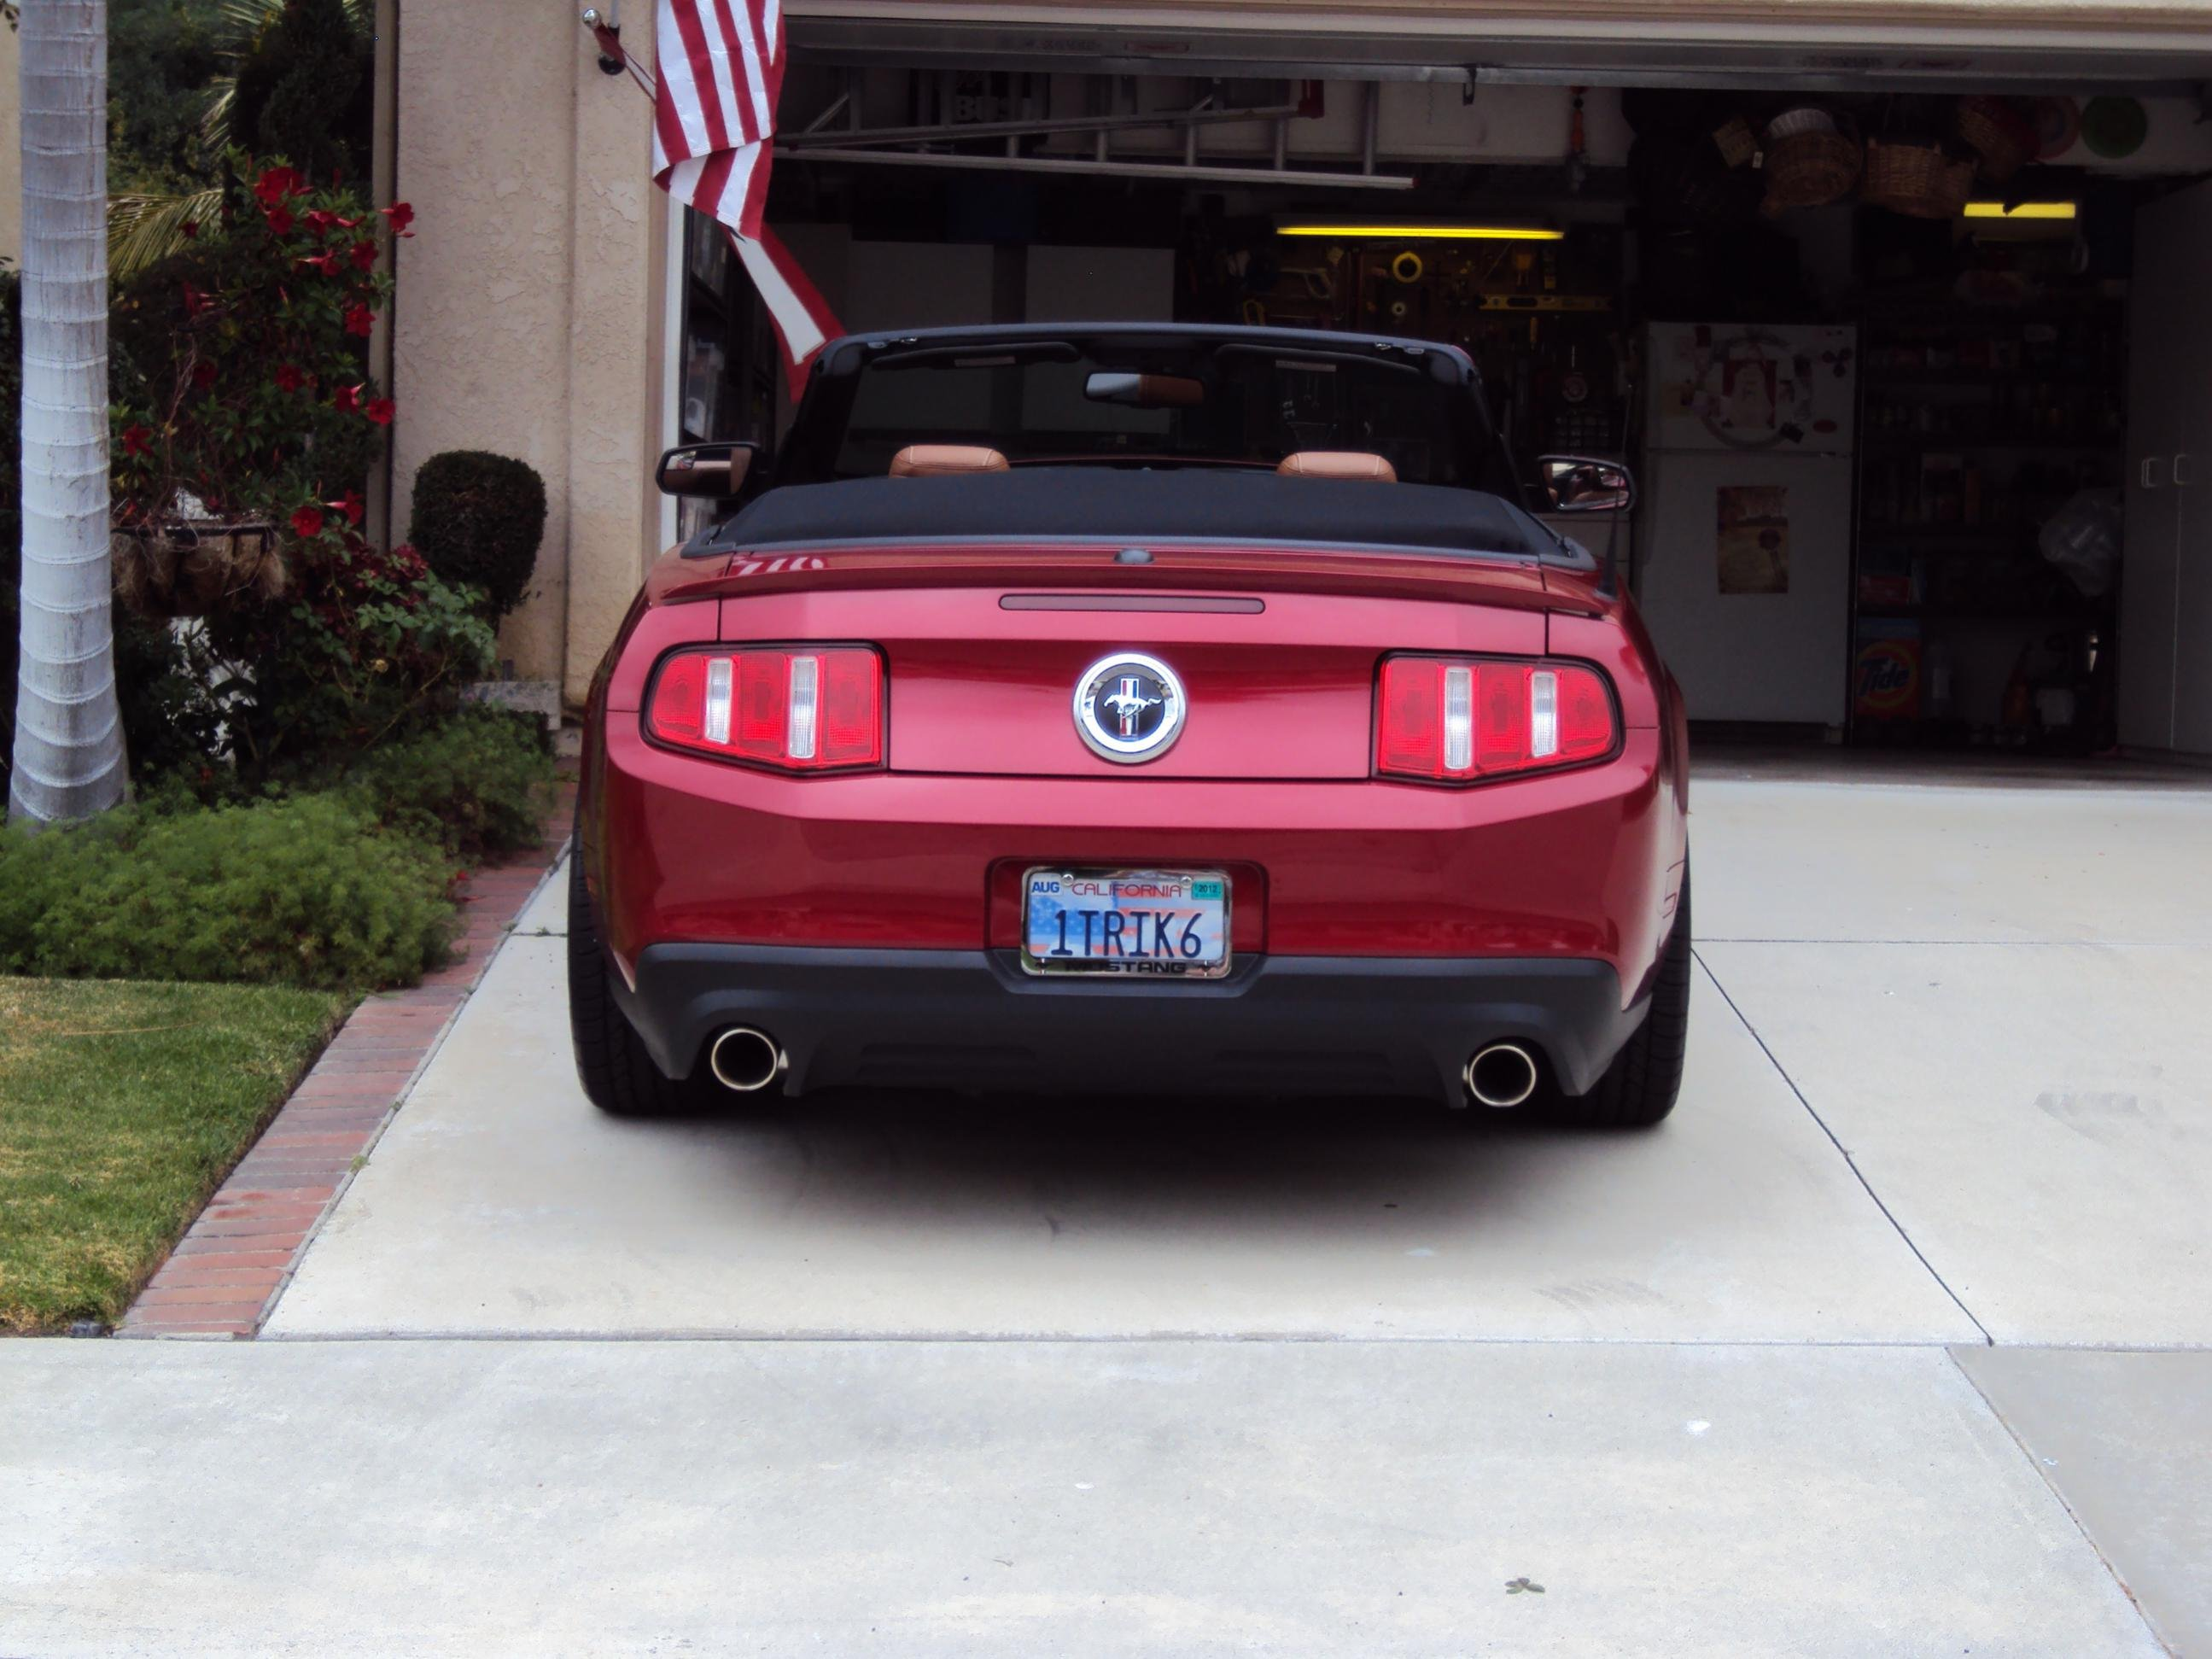 Customized License Plates >> Personalized license plate ideas - Page 3 - Ford Mustang Forum